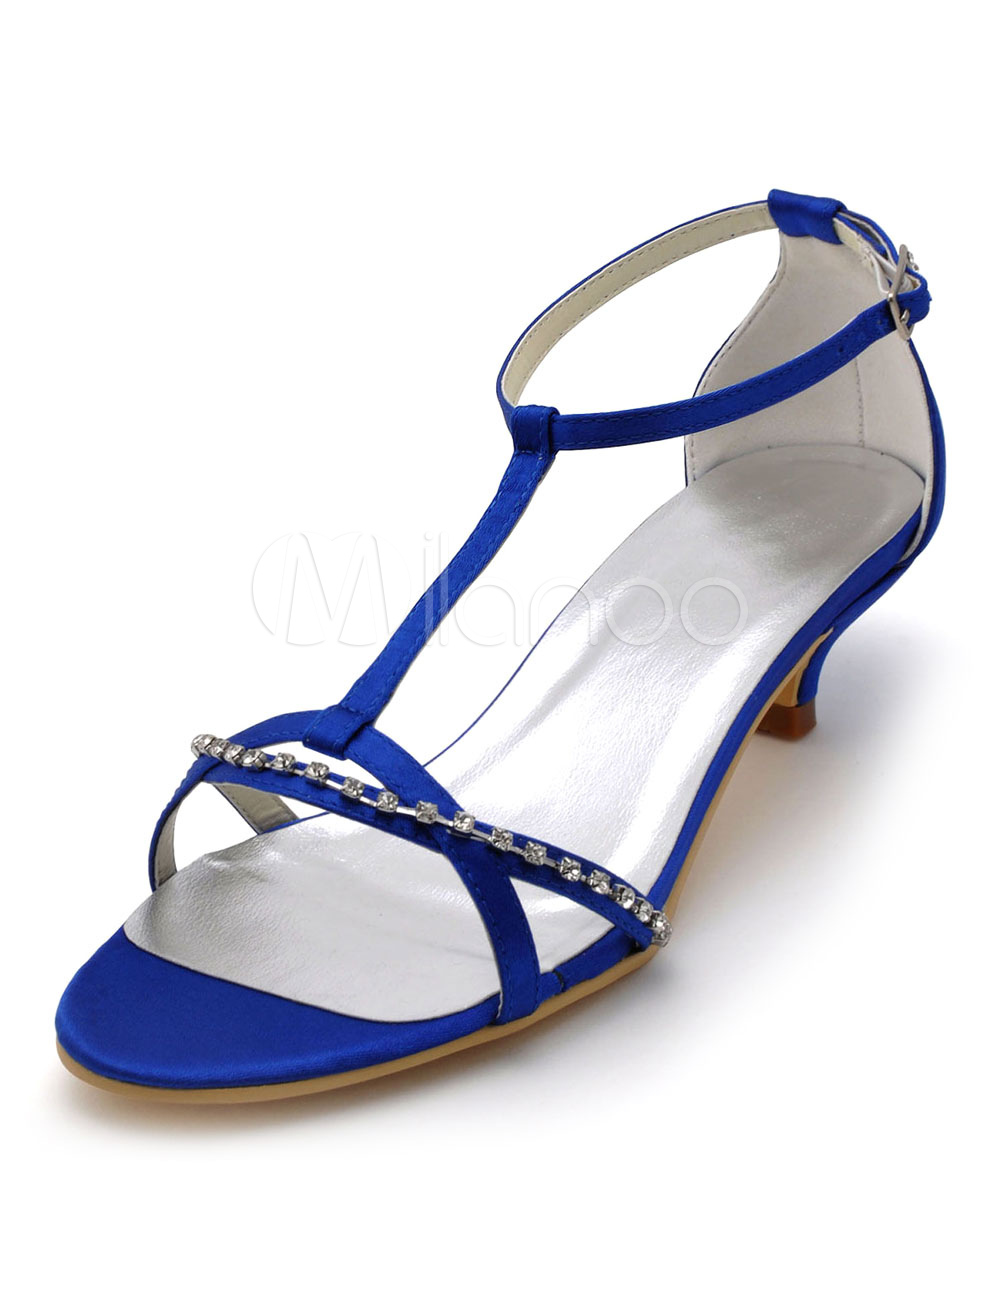 Royal Blue Wedding Shoes Women's Open Toe Rhinestones Bridal Sandals